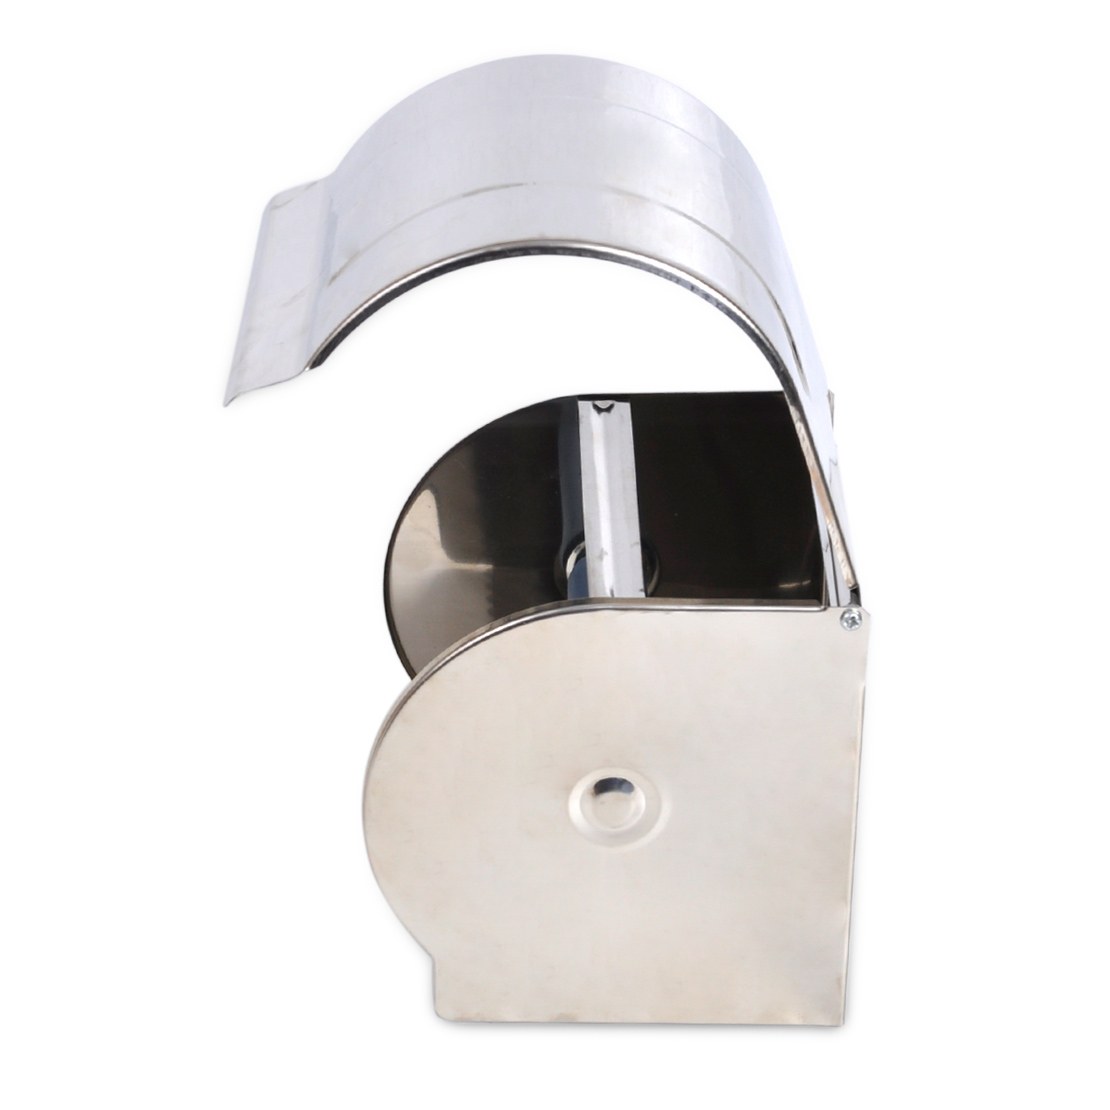 Stainless Steel Toilet Paper Stand Stainless Steel Waterproof Toilet Paper Holder Roll Tissue